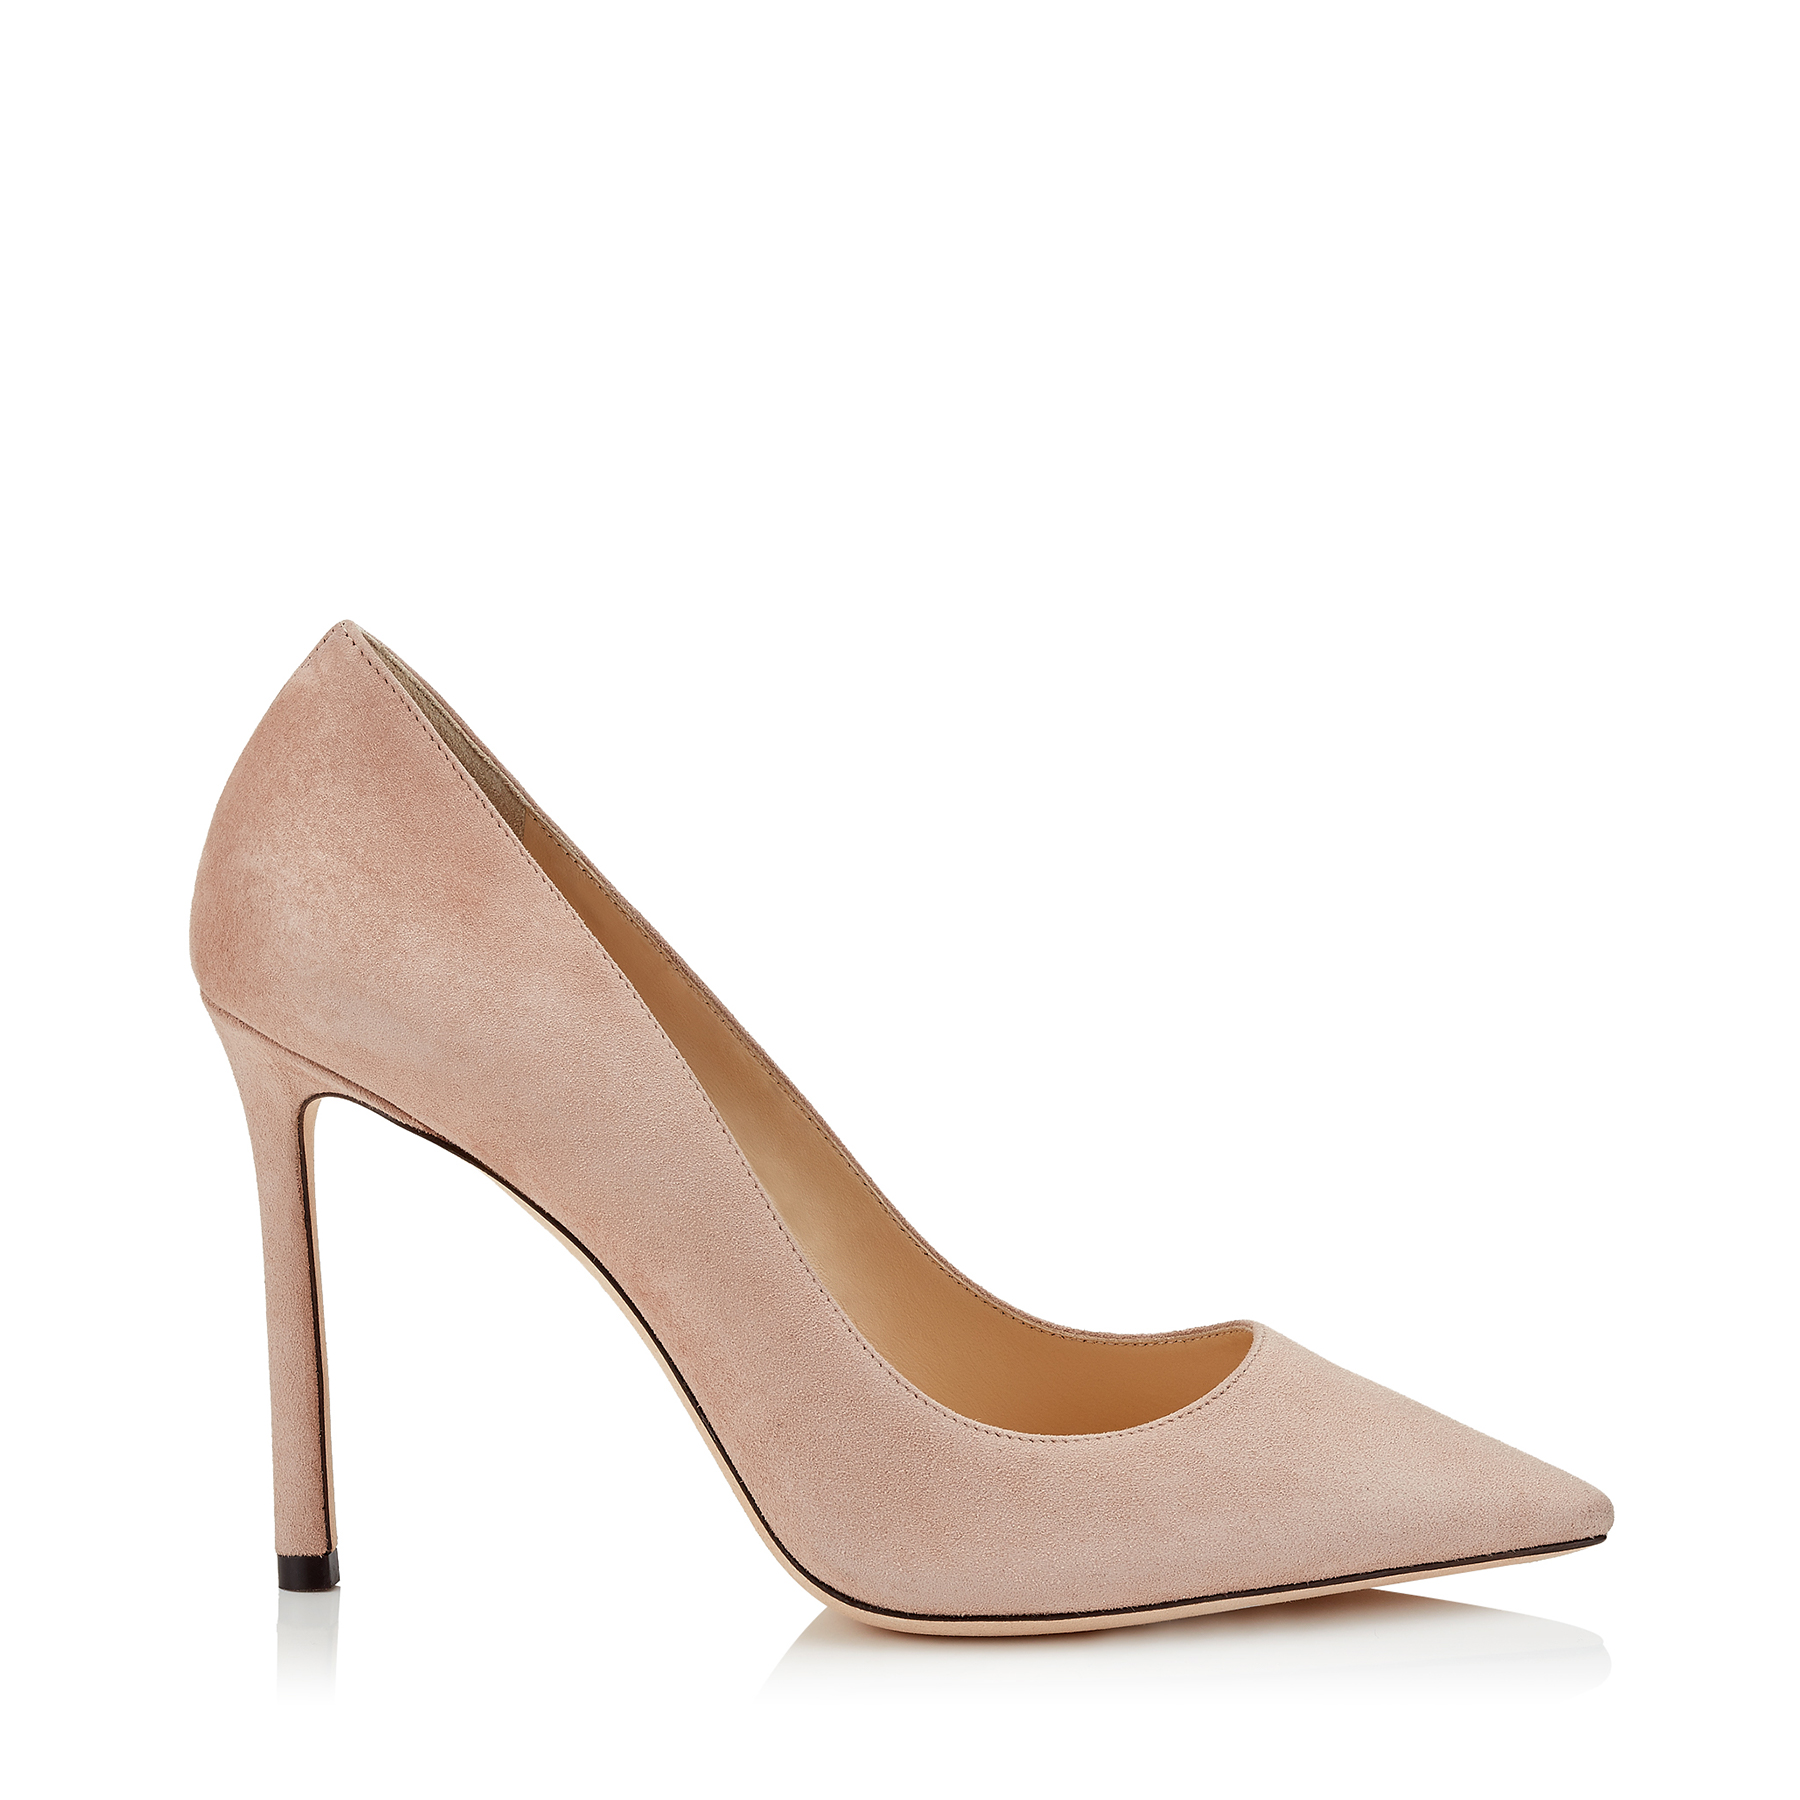 ROMY 100 Ballet Pink Suede Pointy Toe Pumps